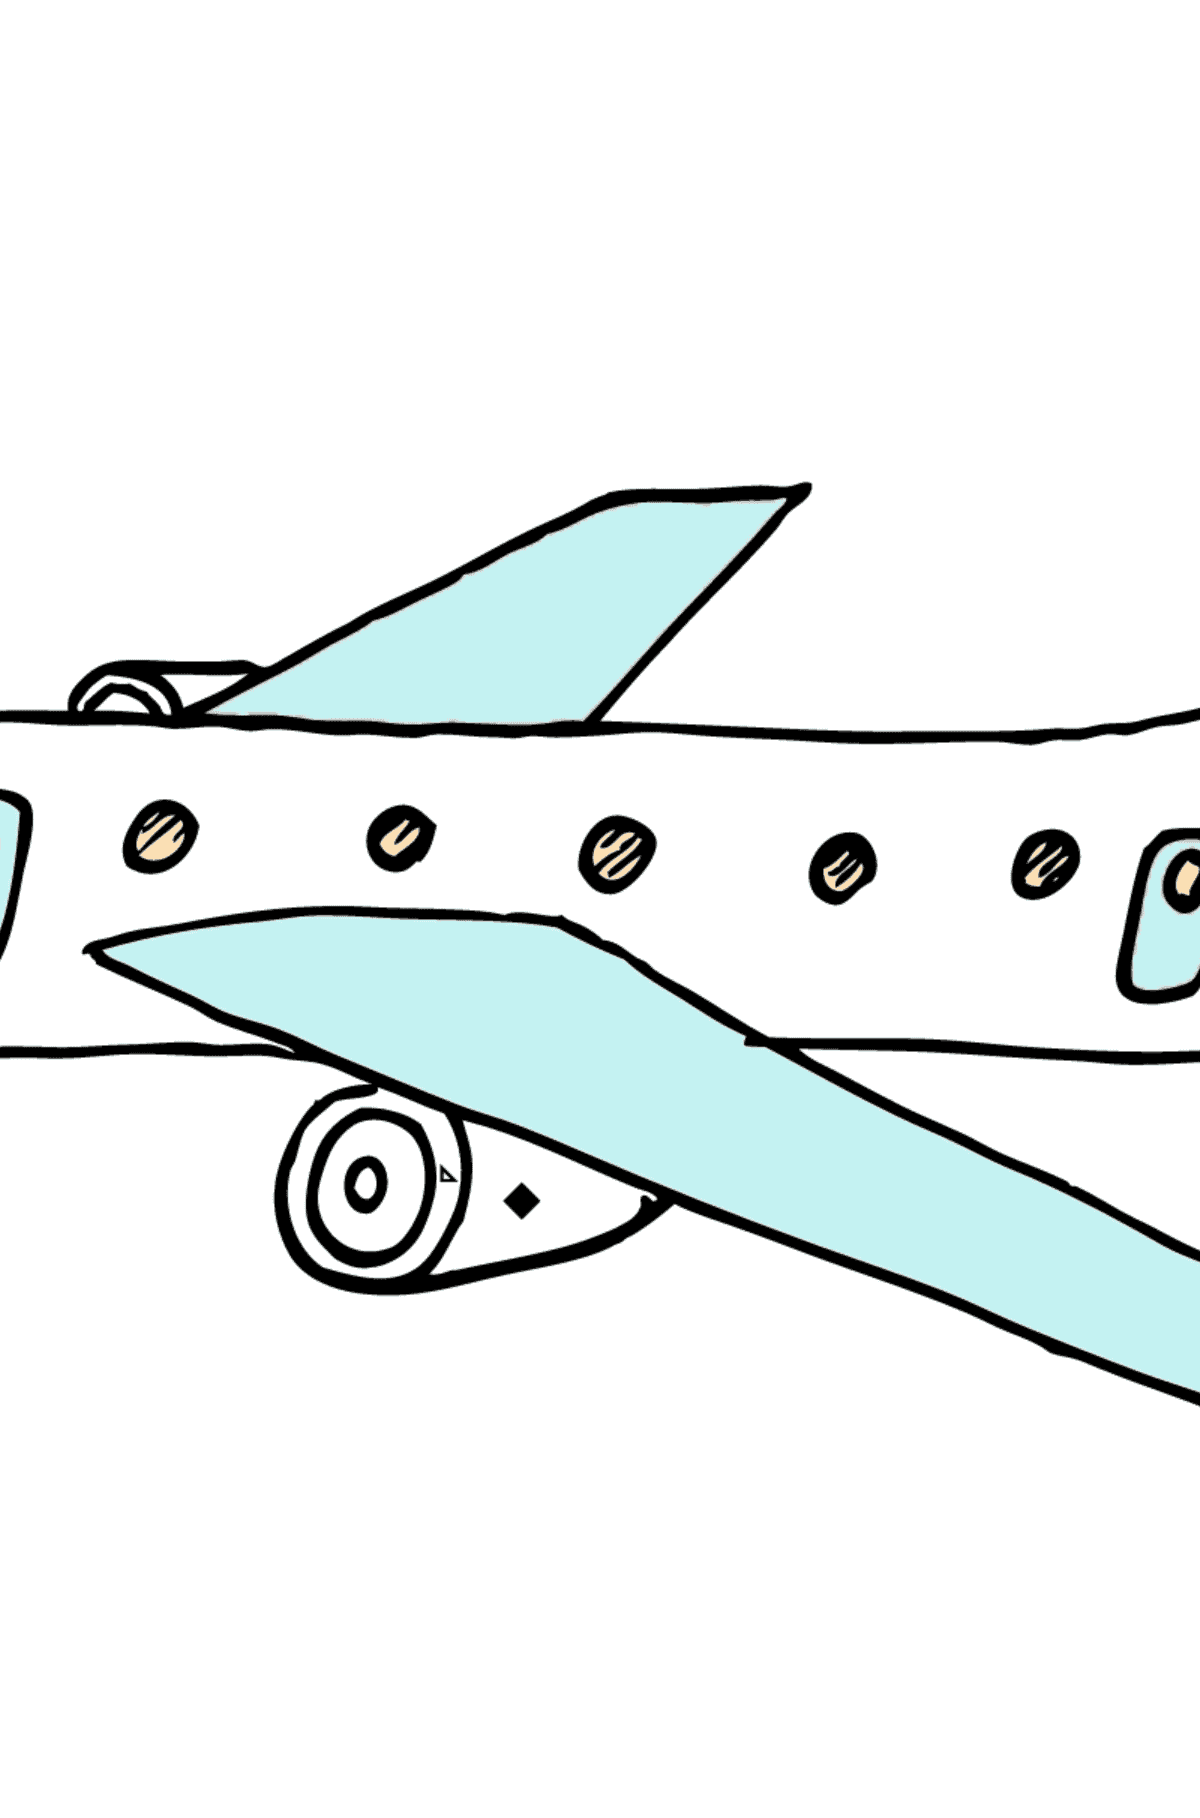 Coloring Page - A Commercial Jet - Coloring by Symbols and Geometric Shapes for Kids